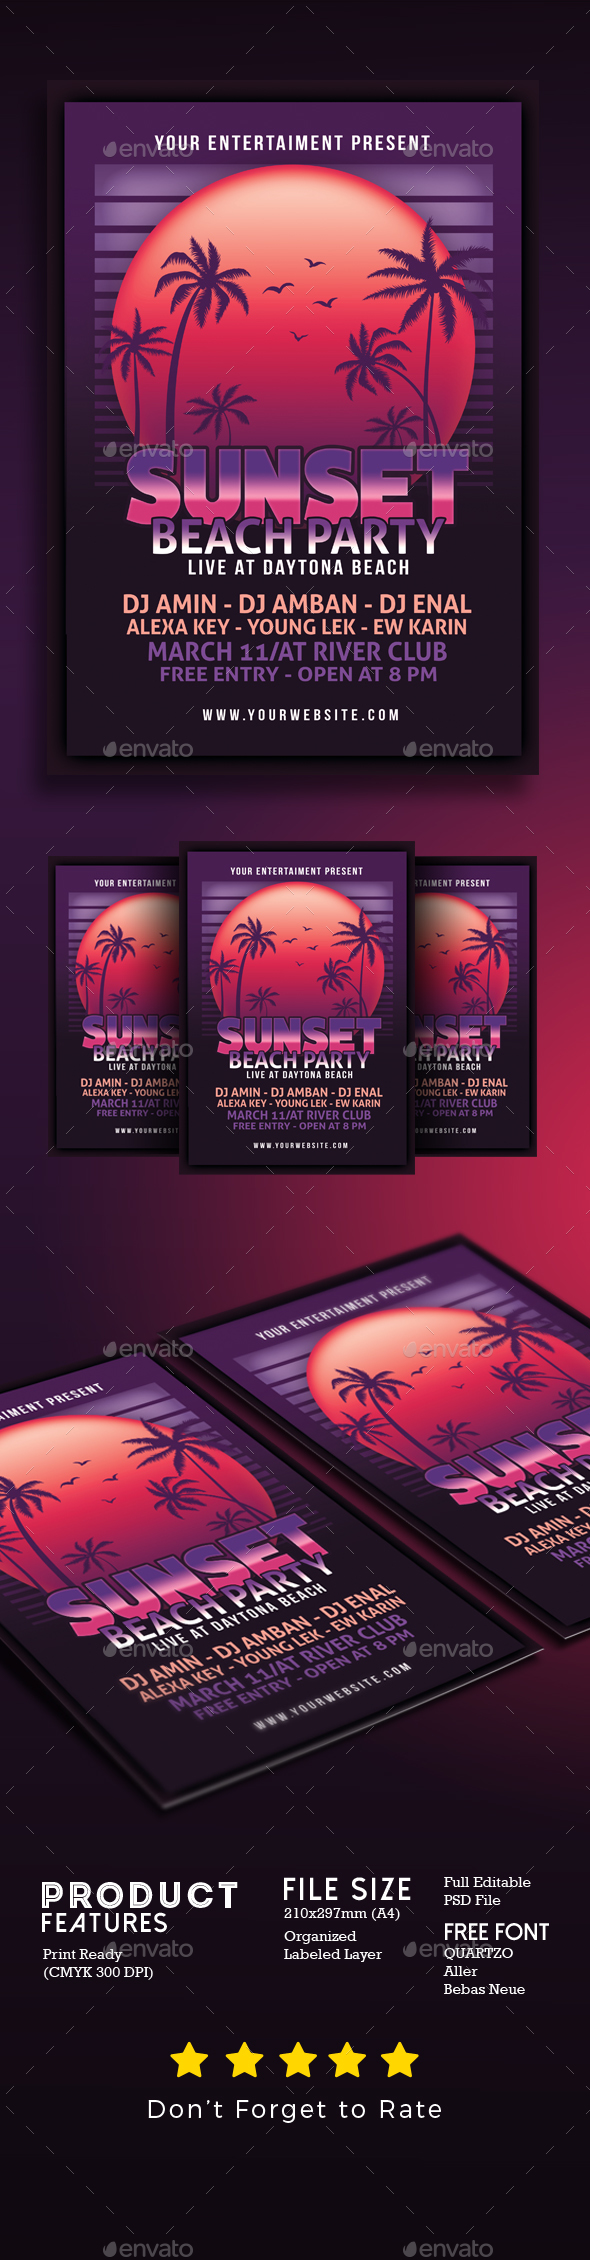 Sunset Beach Party Flyer - Events Flyers